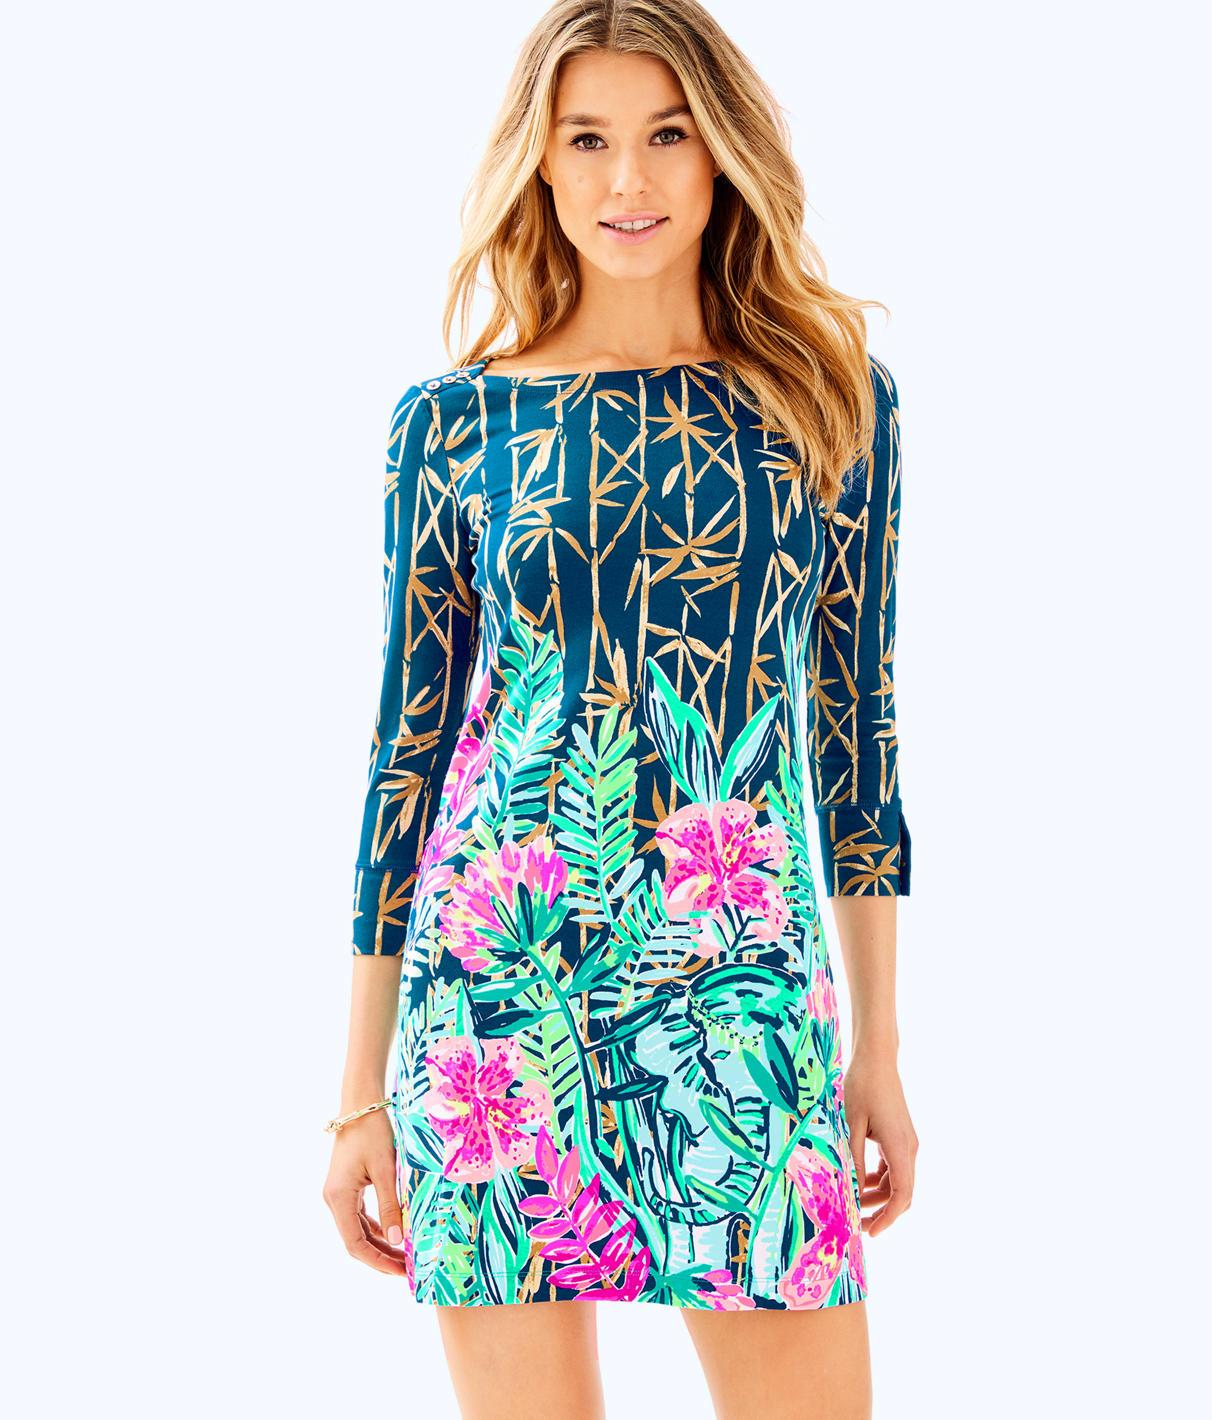 f92c53080f5d8f Lilly Pulitzer Upf 50+ Sophie Dress In Multi Slathouse Soiree Engineered  Sophie